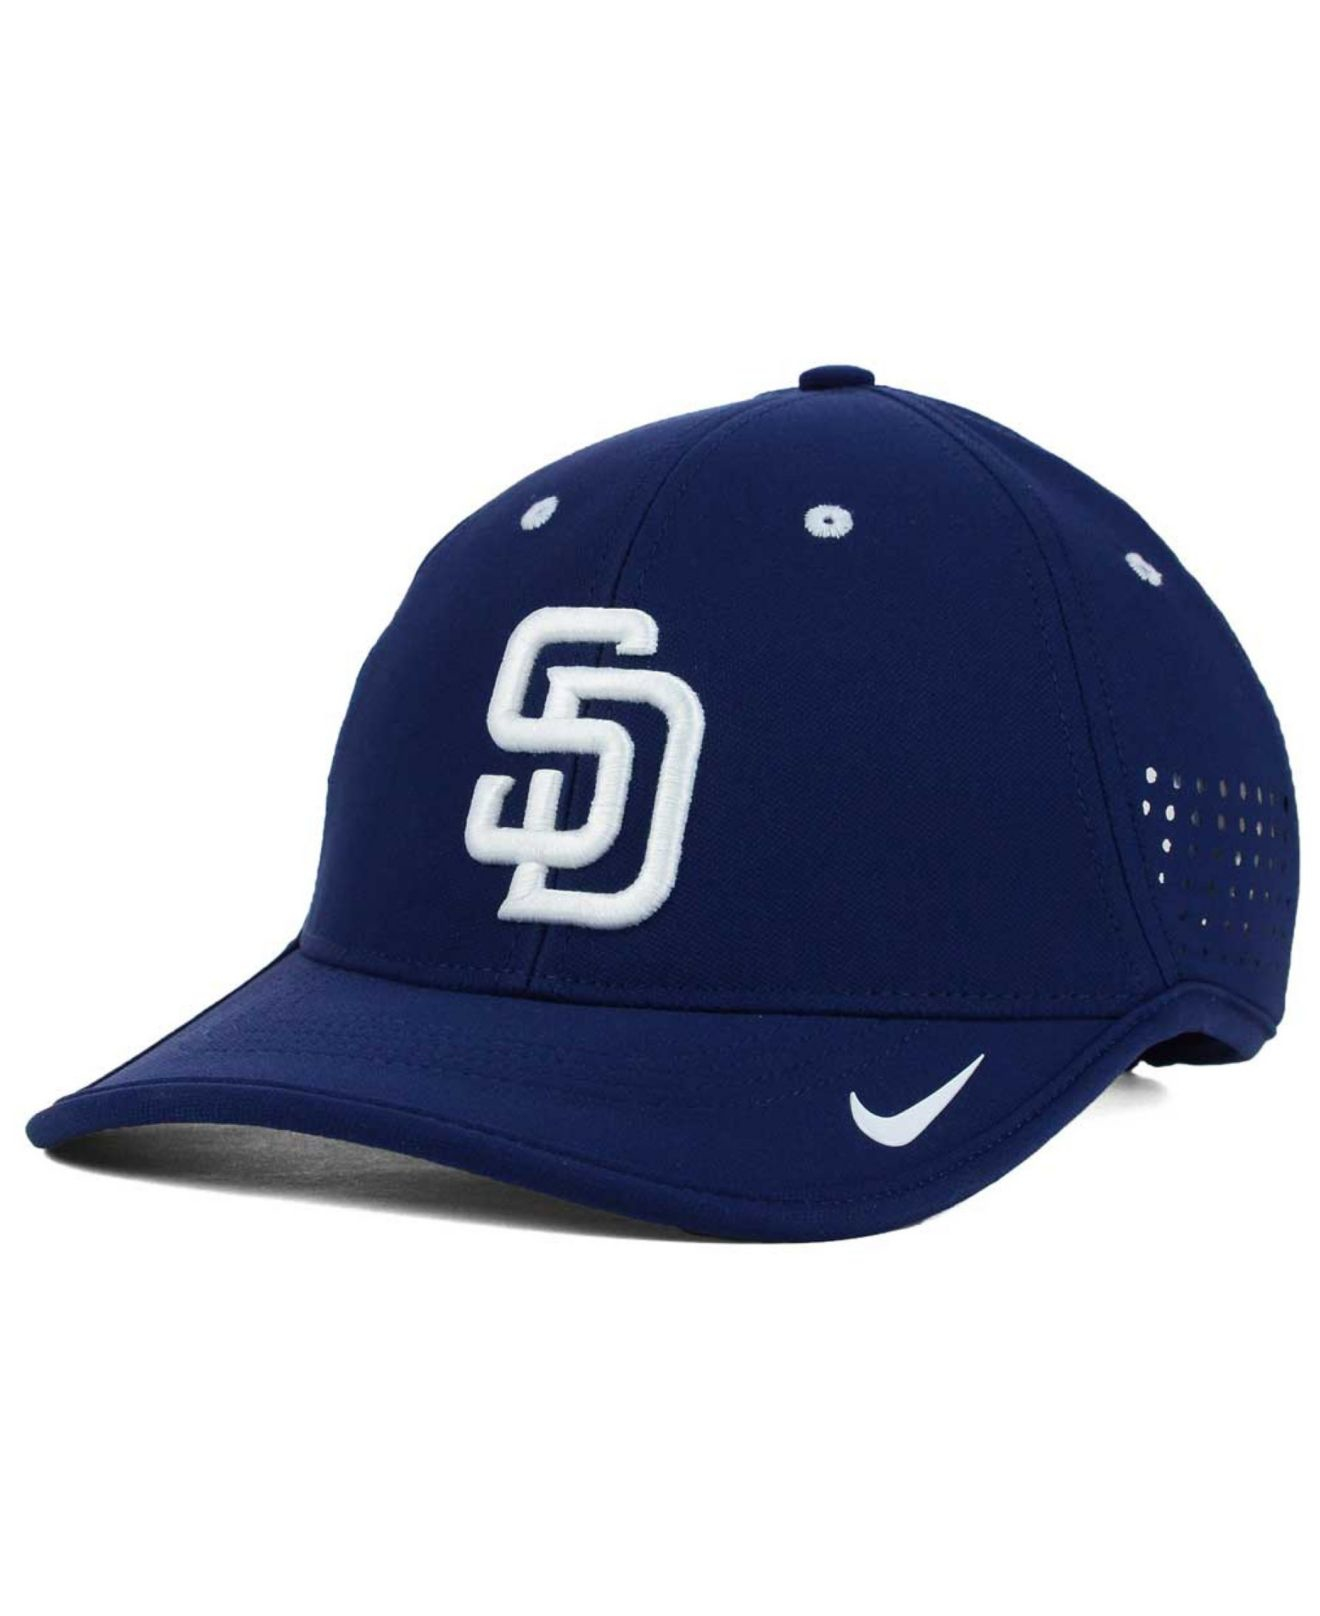 check out 29b57 57c33 ... real lyst nike san diego padres vapor swoosh adjustable cap in blue for  men c8686 61365